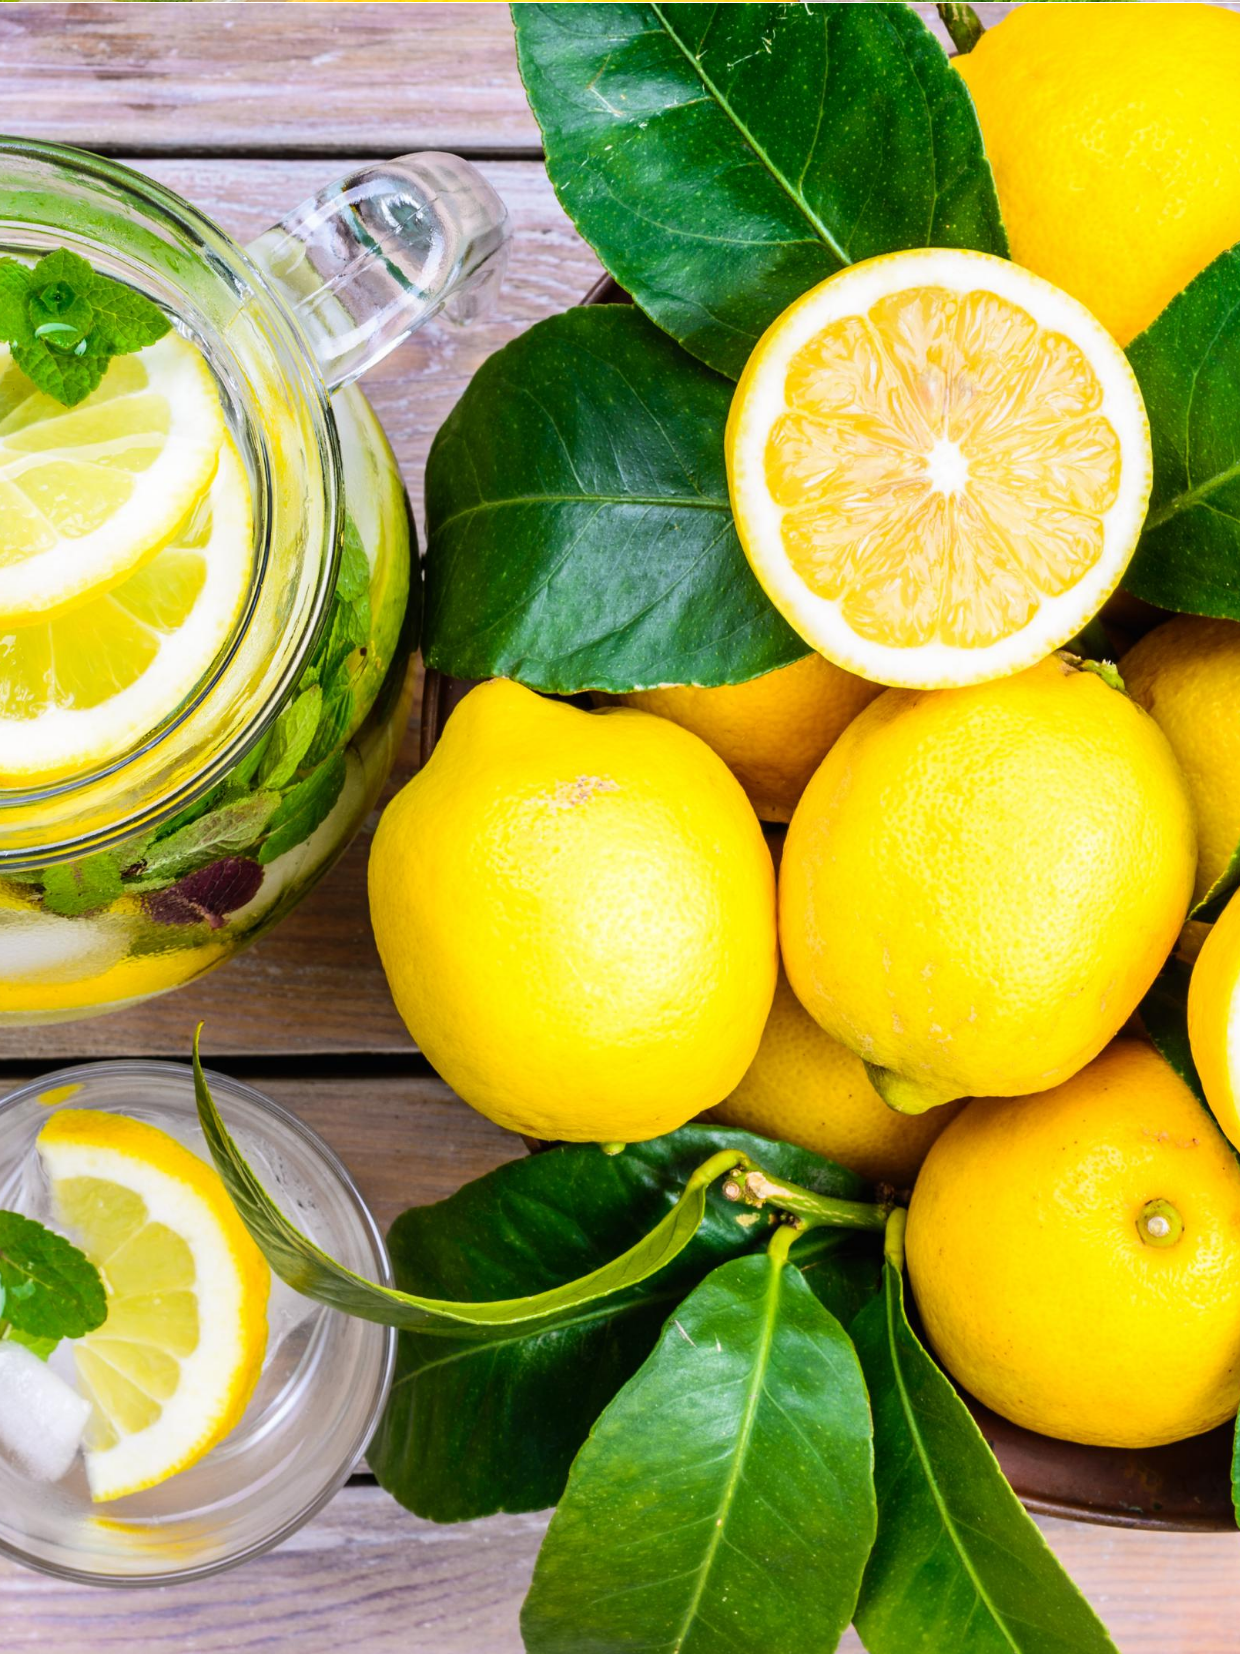 Lemons and Leaves Describing Nutrition Counseling